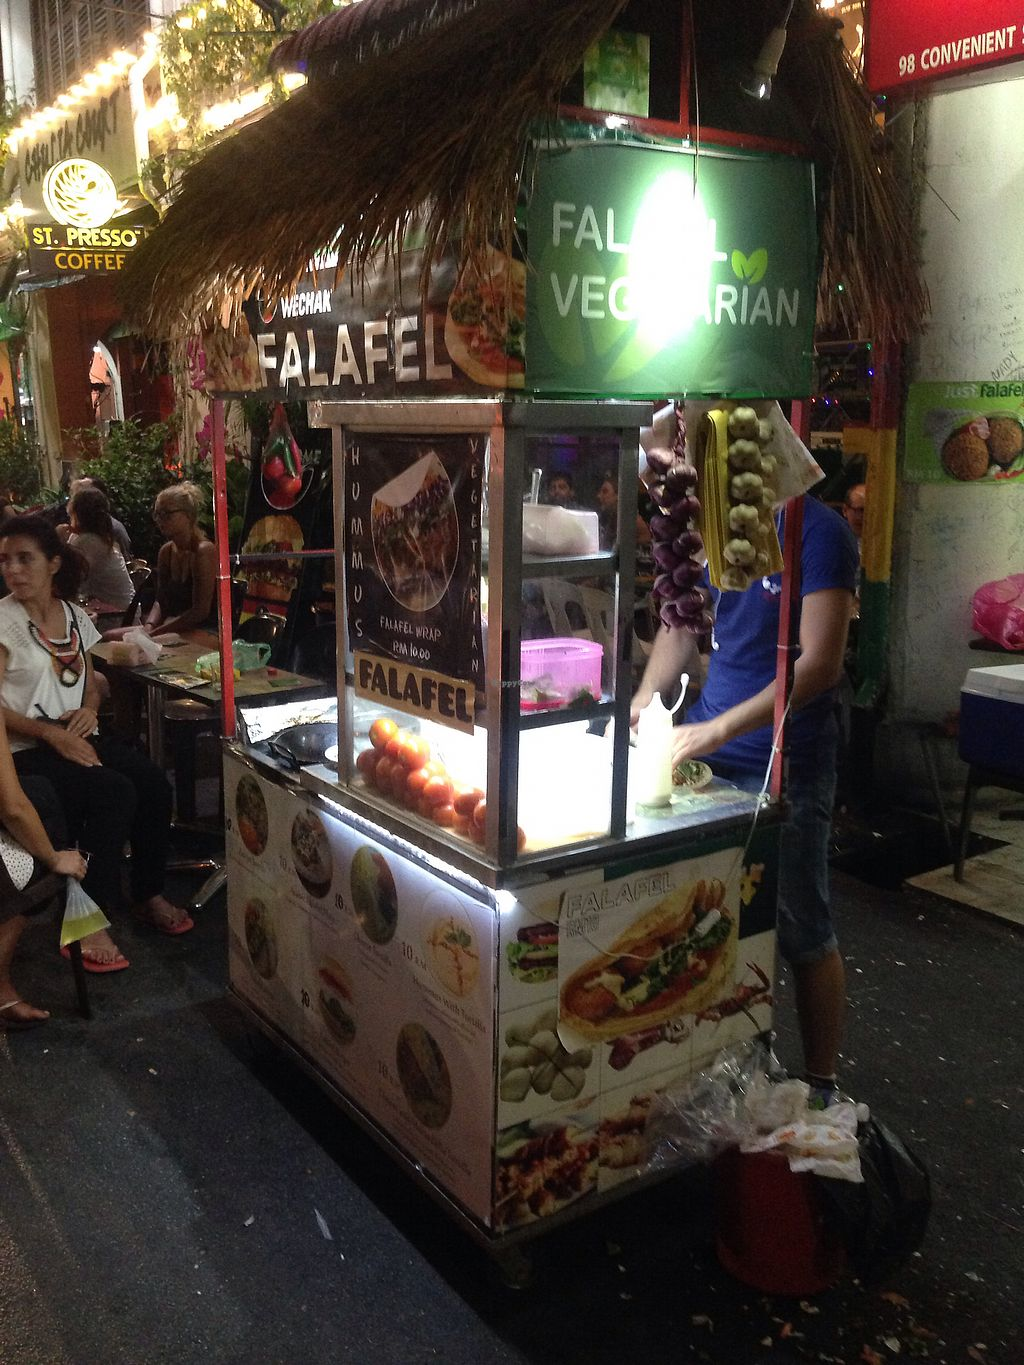 """Photo of Falafel Vegetarian Food Chulia St  by <a href=""""/members/profile/JeppoMAX"""">JeppoMAX</a> <br/>The cart <br/> March 21, 2018  - <a href='/contact/abuse/image/114989/373615'>Report</a>"""